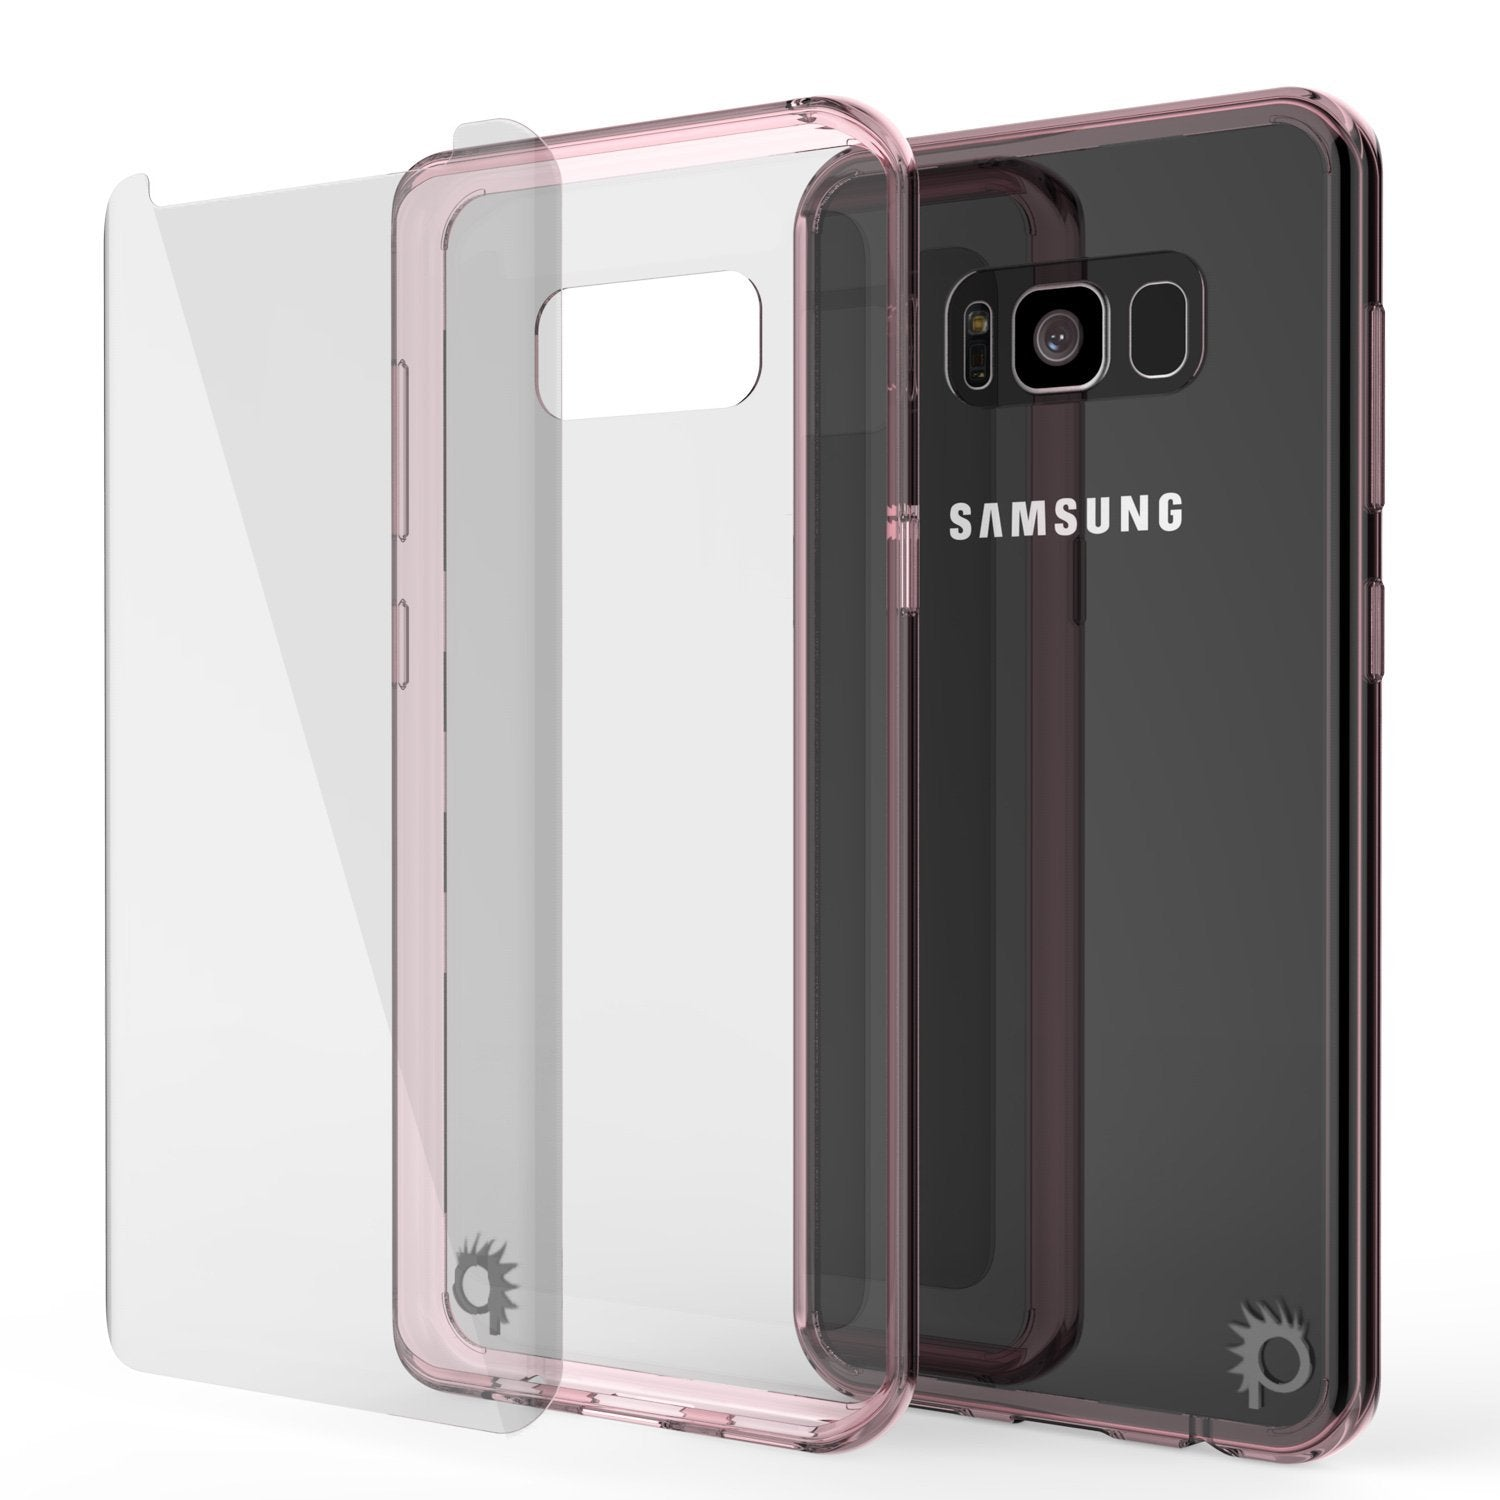 S8 Case Punkcase® LUCID 2.0 Crystal Pink Series w/ PUNK SHIELD Screen Protector | Ultra Fit - PunkCase NZ